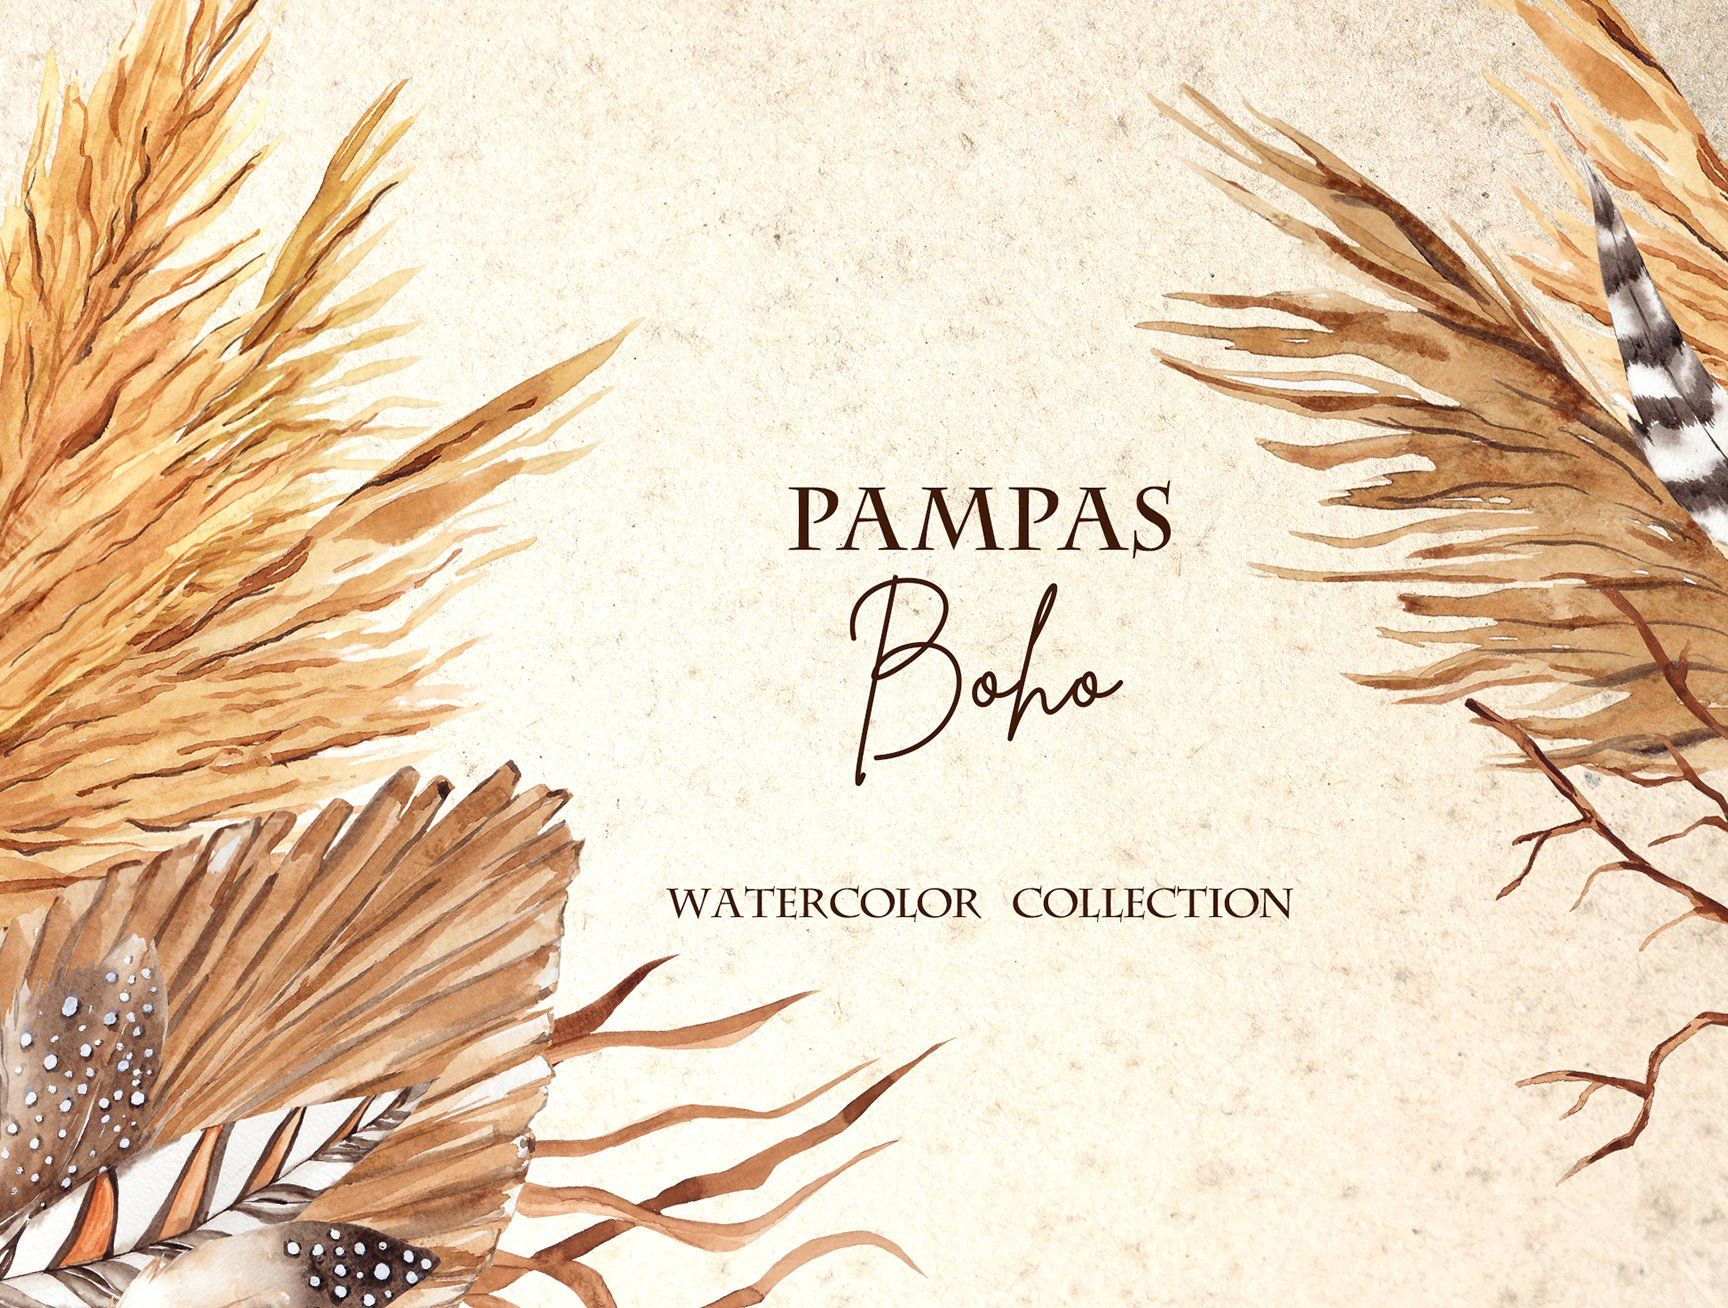 Pampas. Boho watercolor collection by